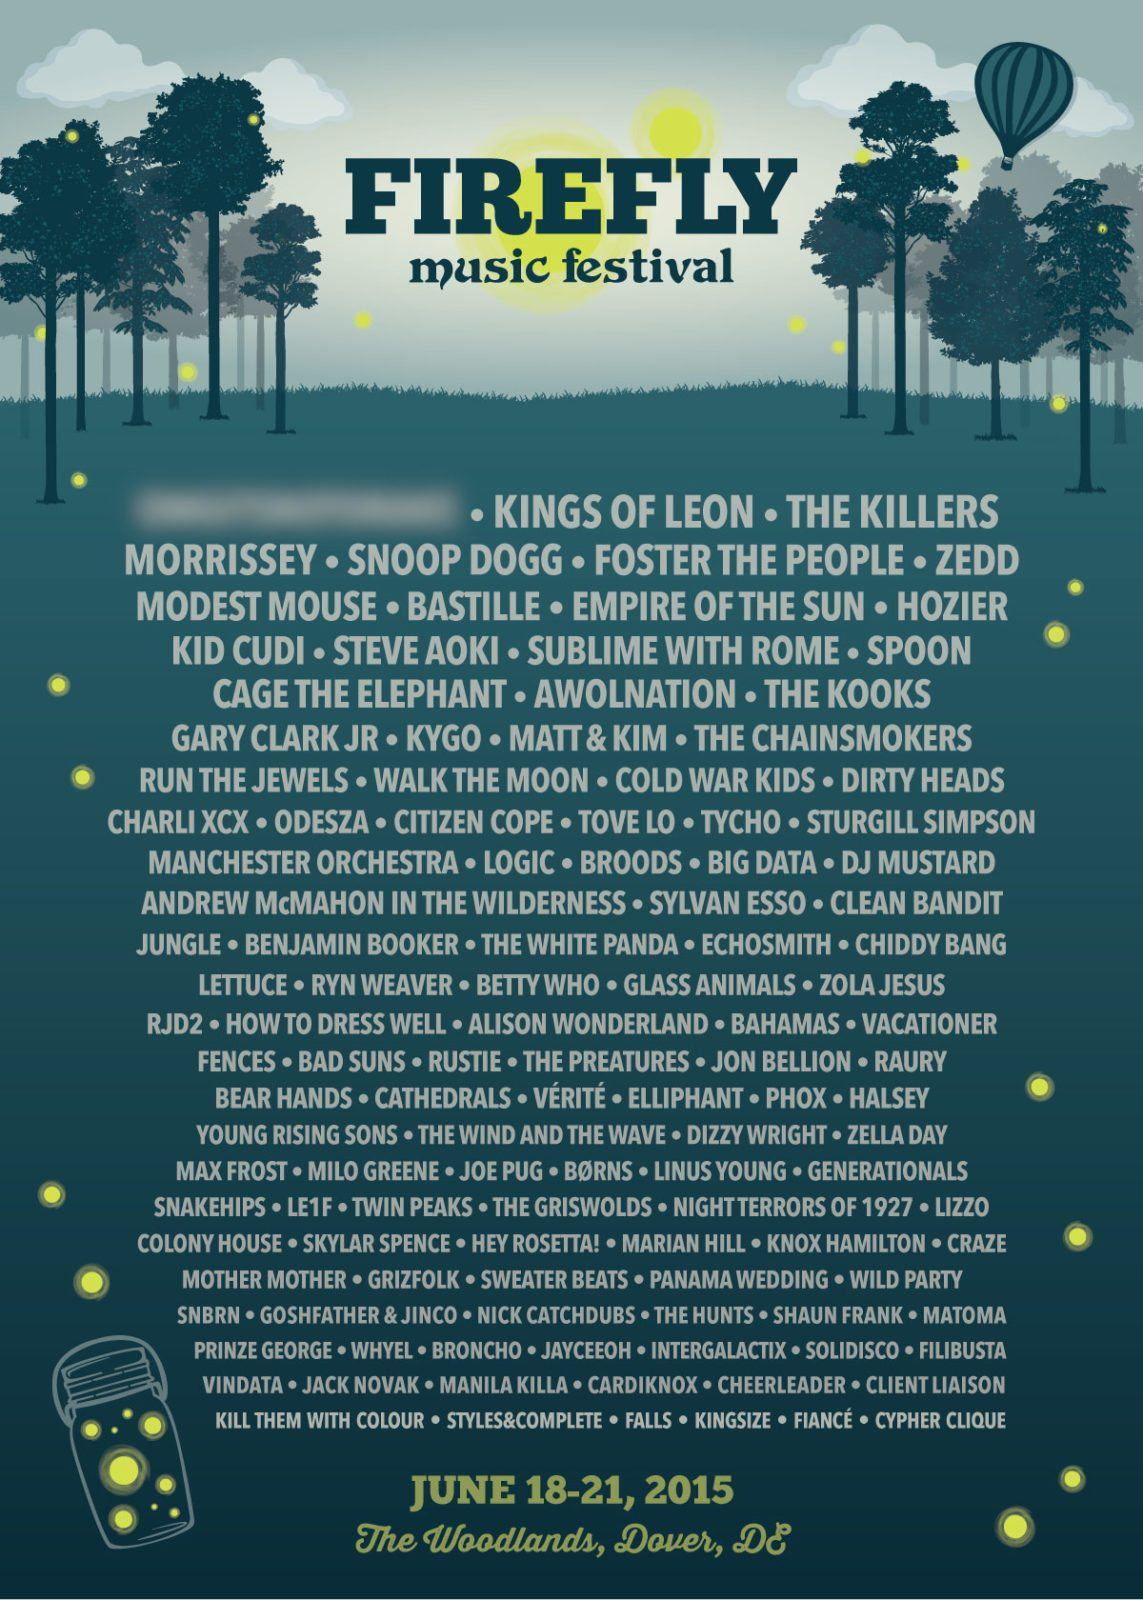 Firefly Music Festival 2015 Lineup! Morrisey, Snoop Dogg, Kings Of Leon, Modest Mouse